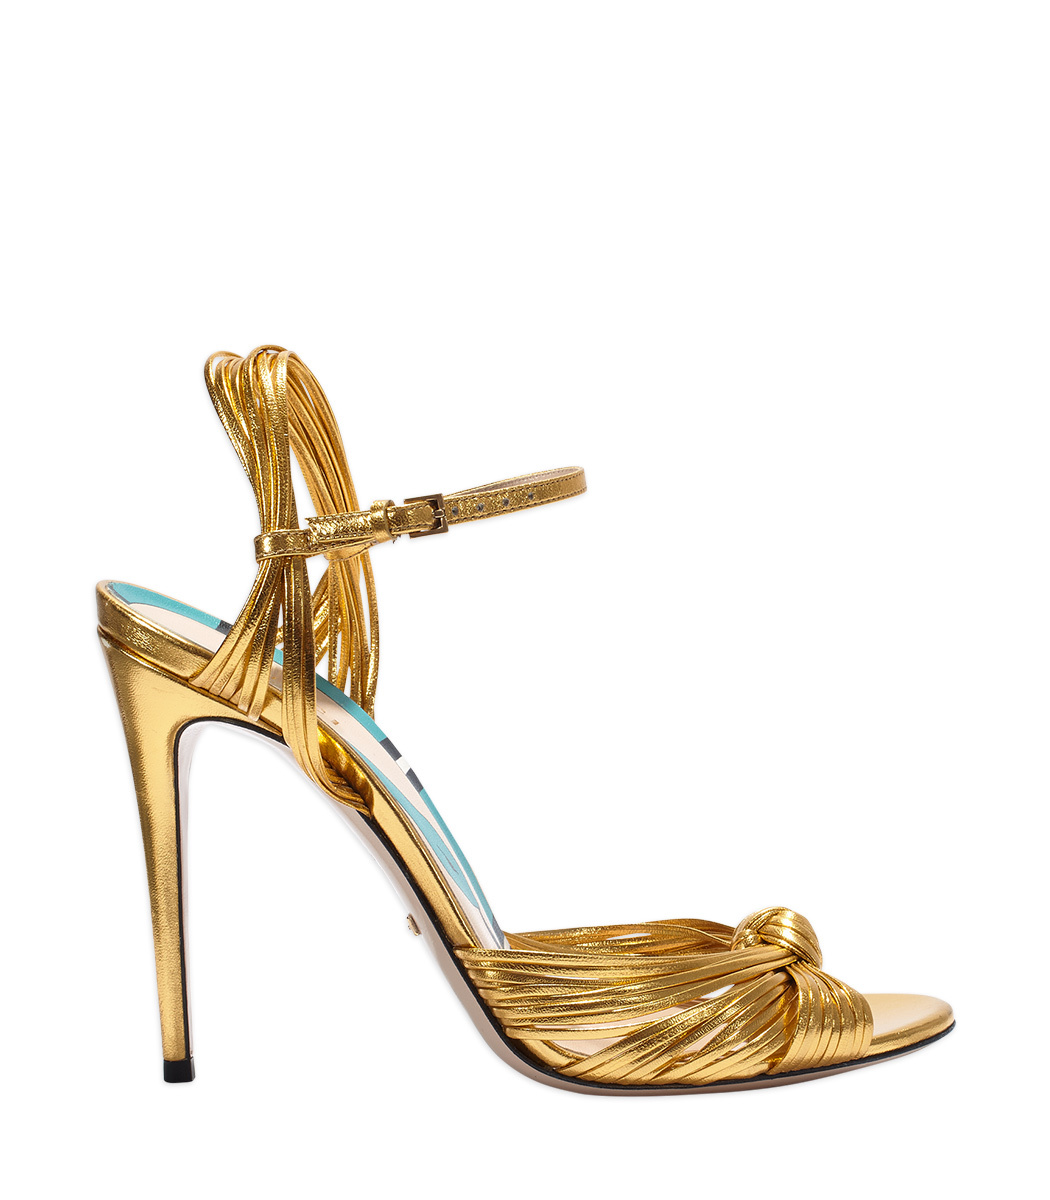 87befb6b54d28 Gucci Allie Knotted Strappy Sandal